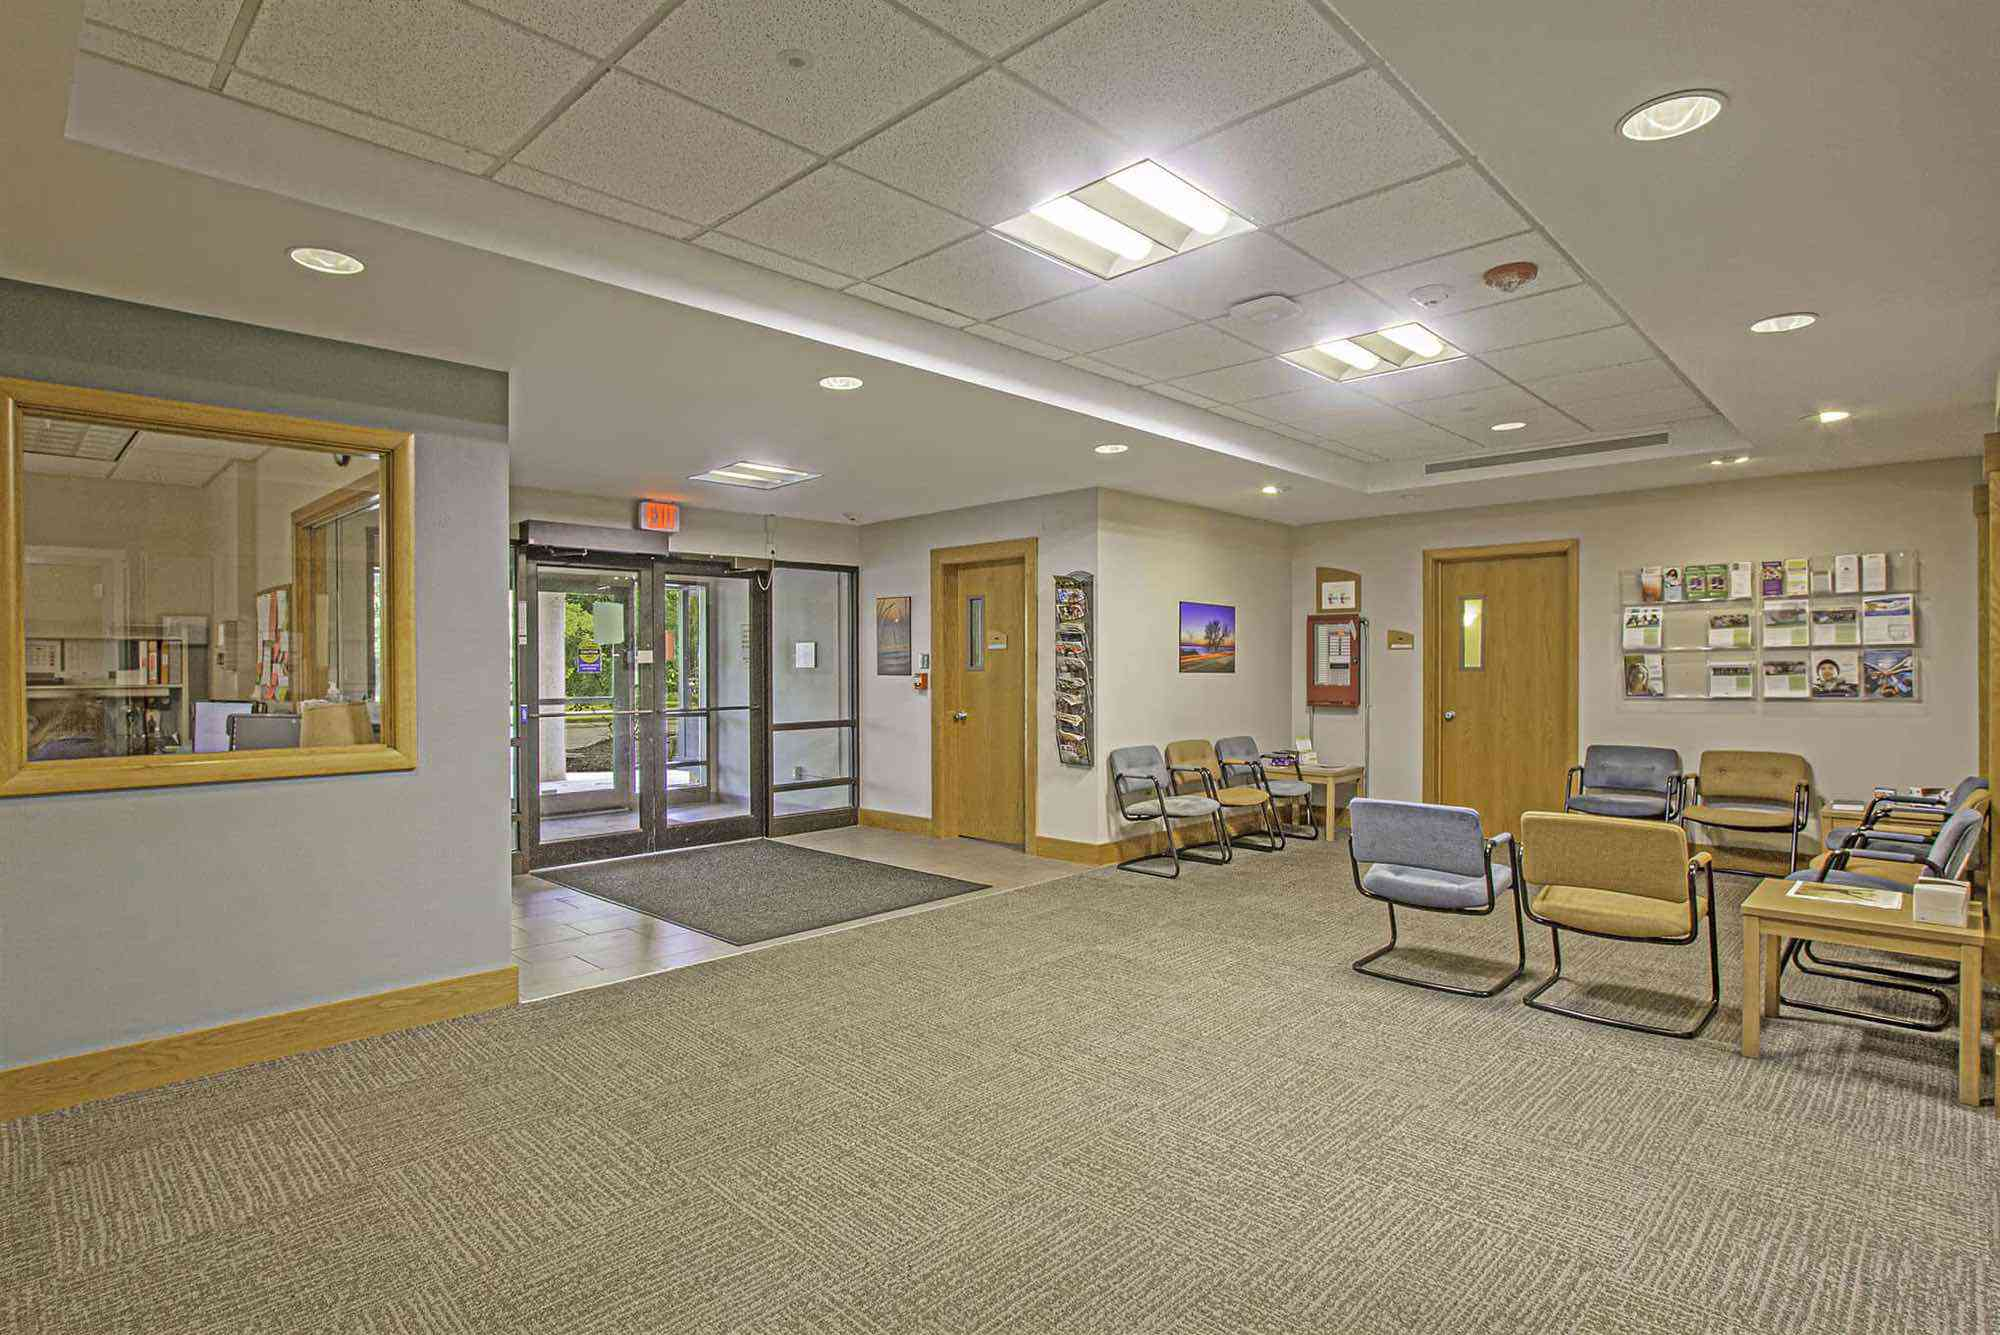 Retreat Clinic lobby and waiting area